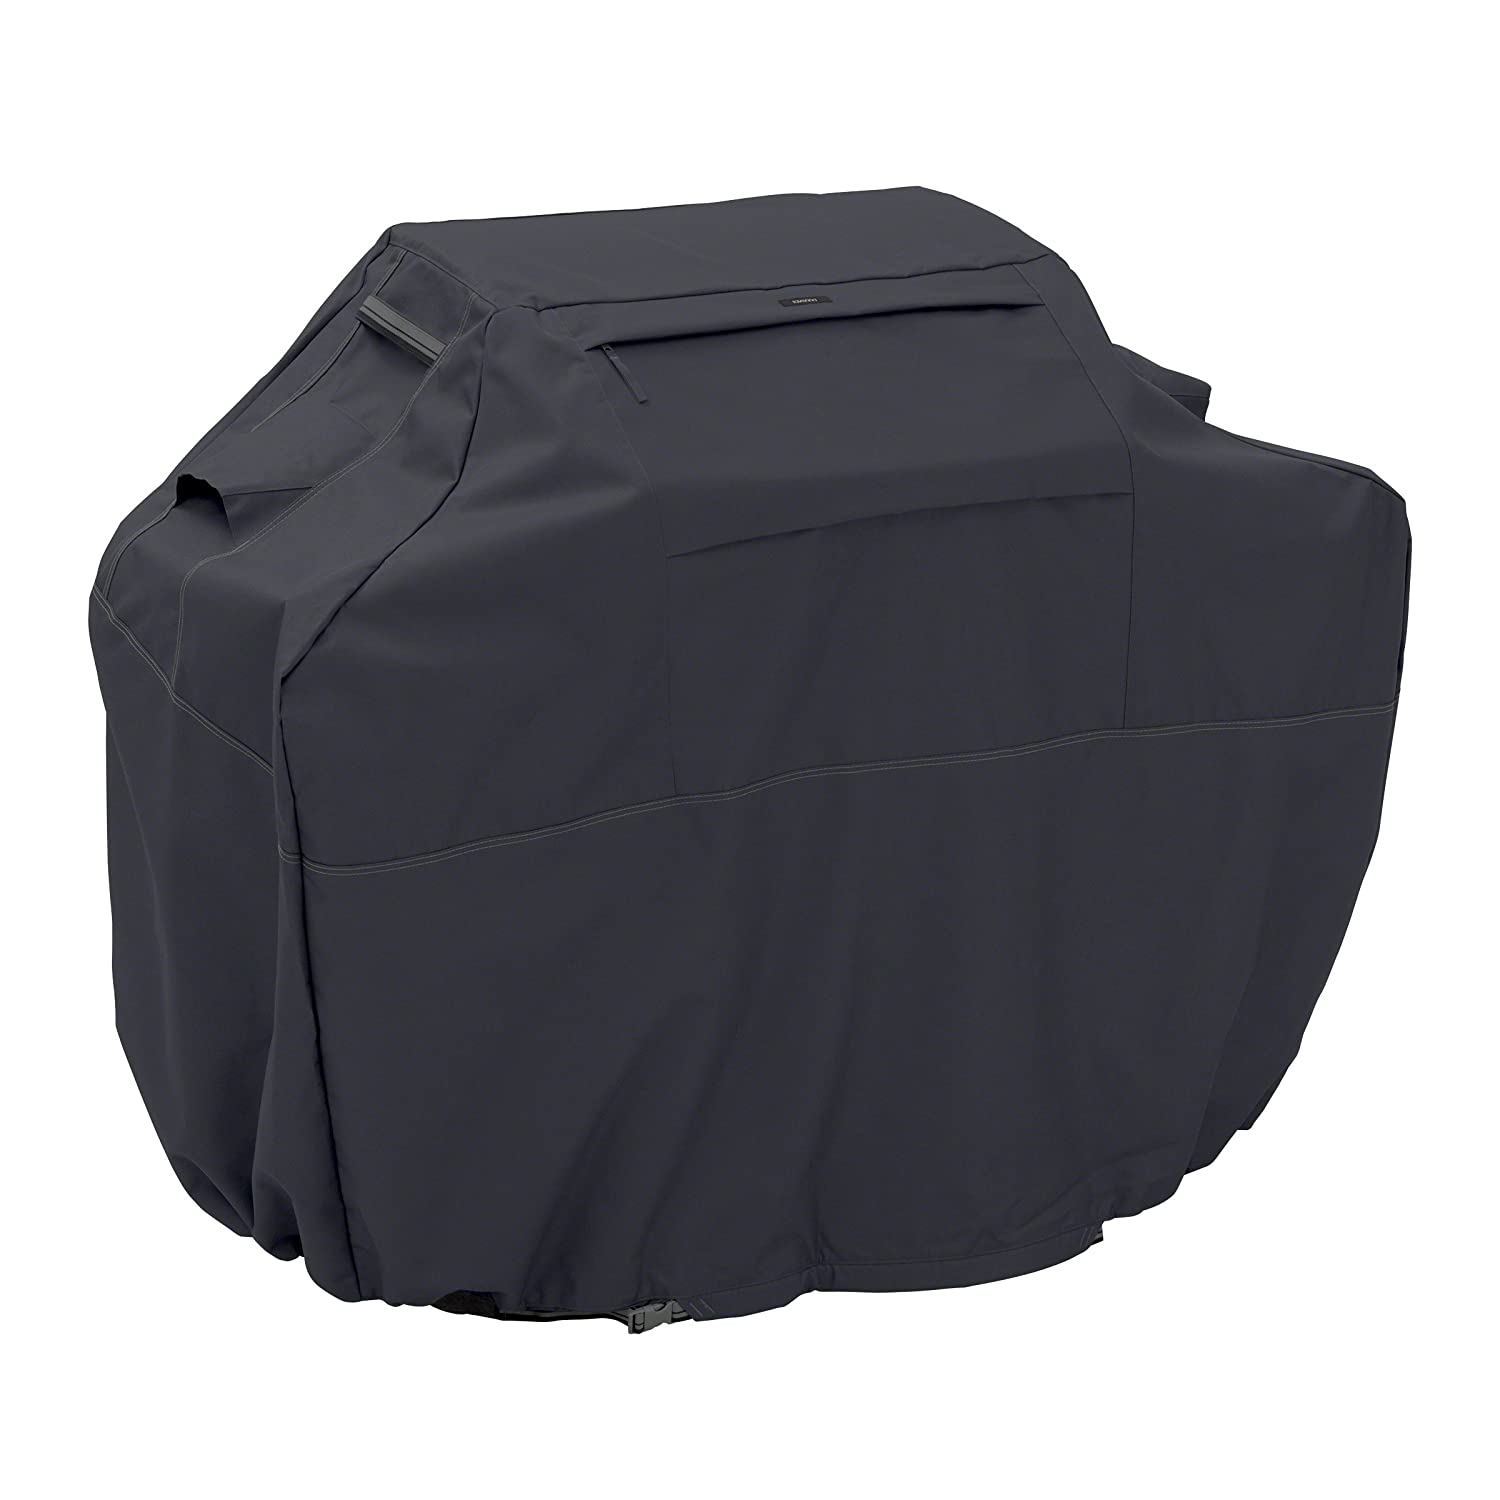 Classic Accessories Ravenna Grill Cover, X-Large, Black